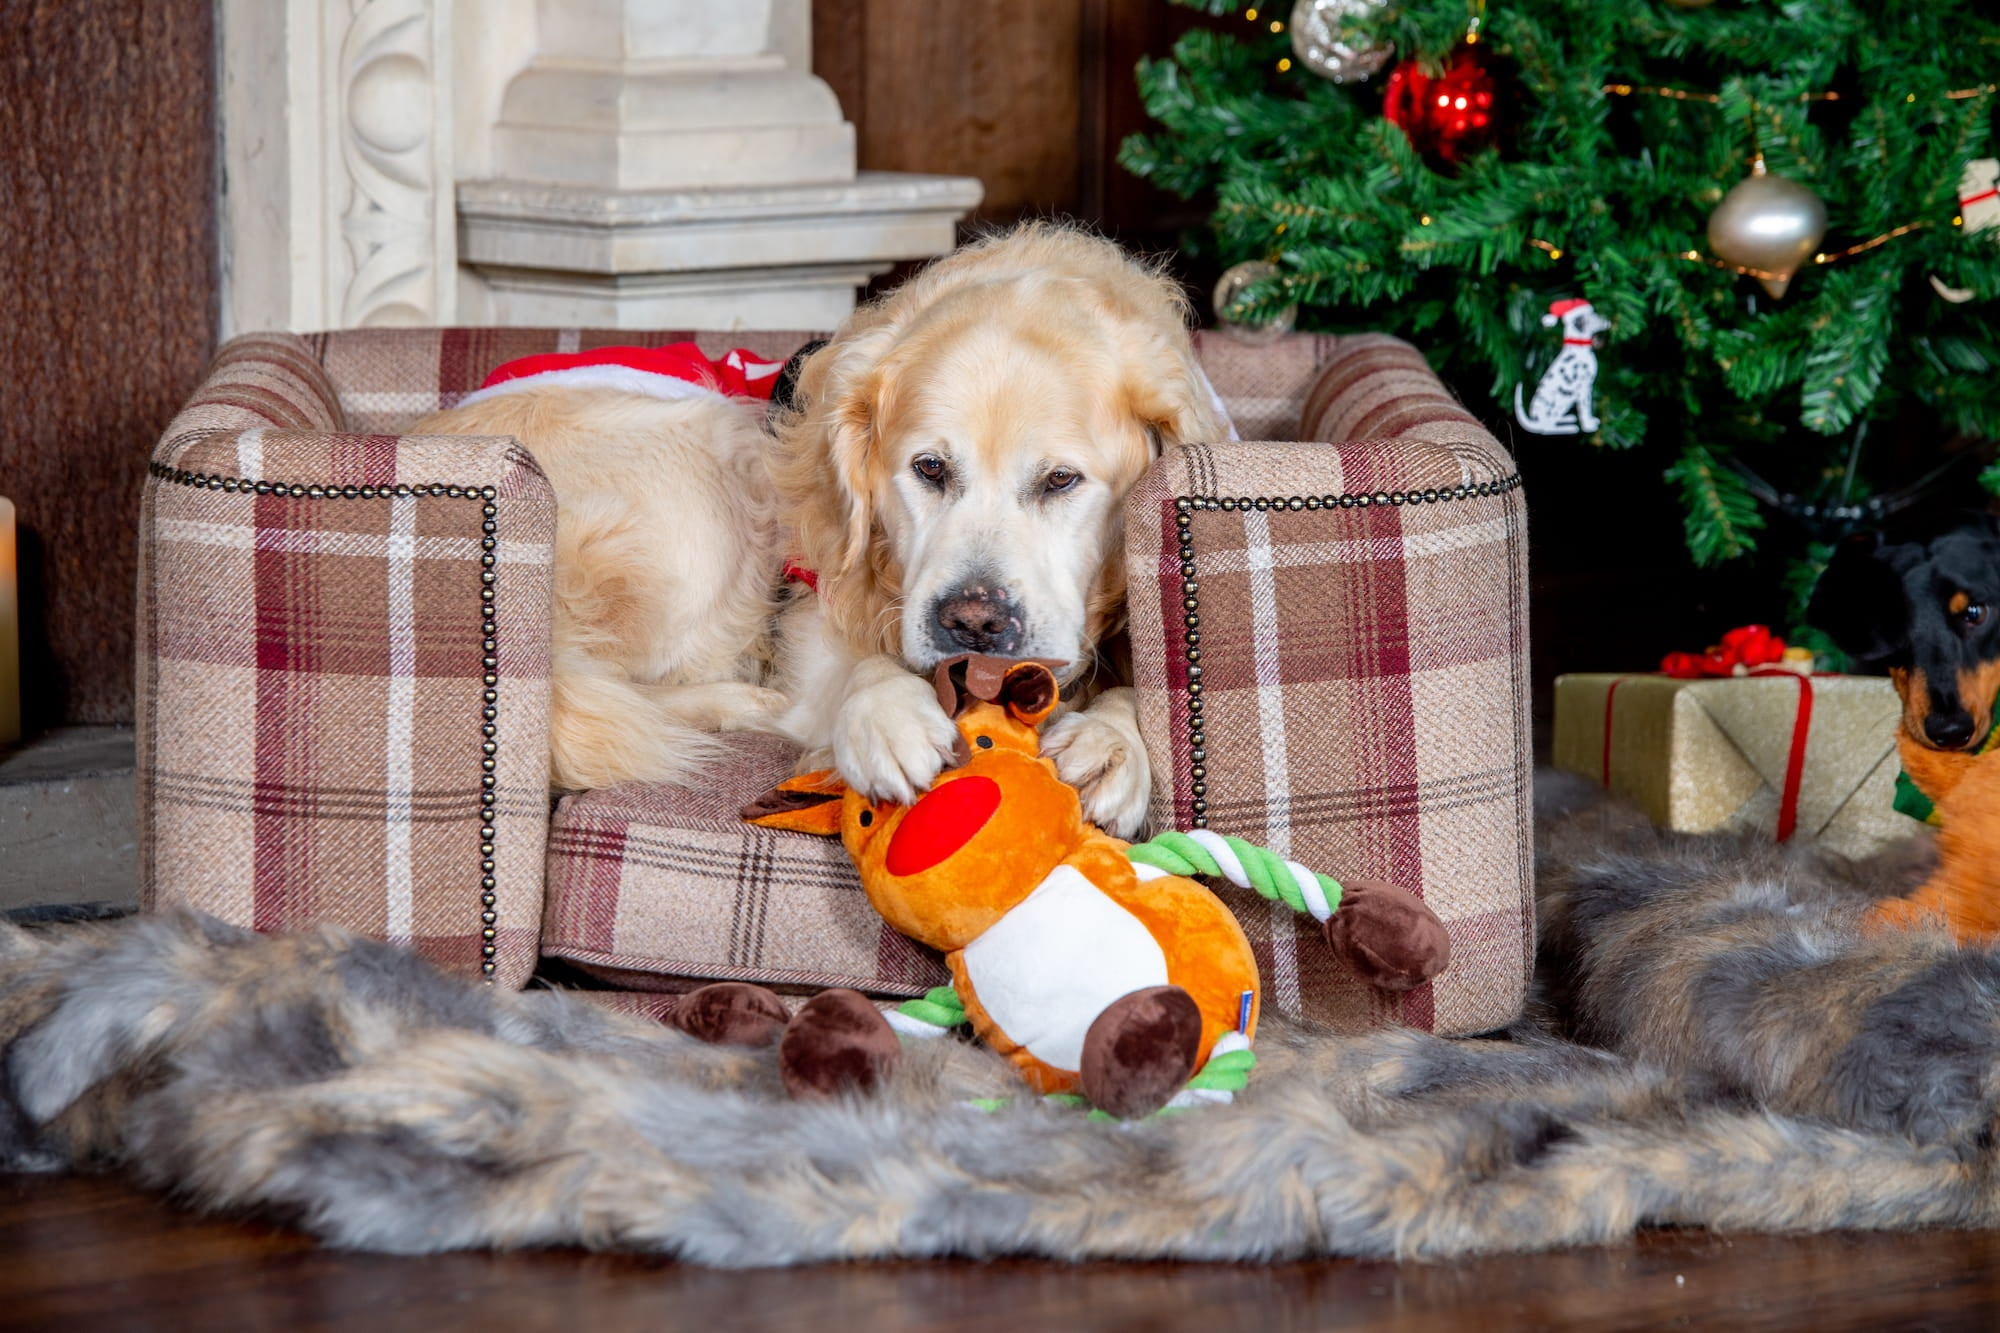 dog sits in a dog Chesterfield by Lords & Labradors and plays with a Christmas Dog toy